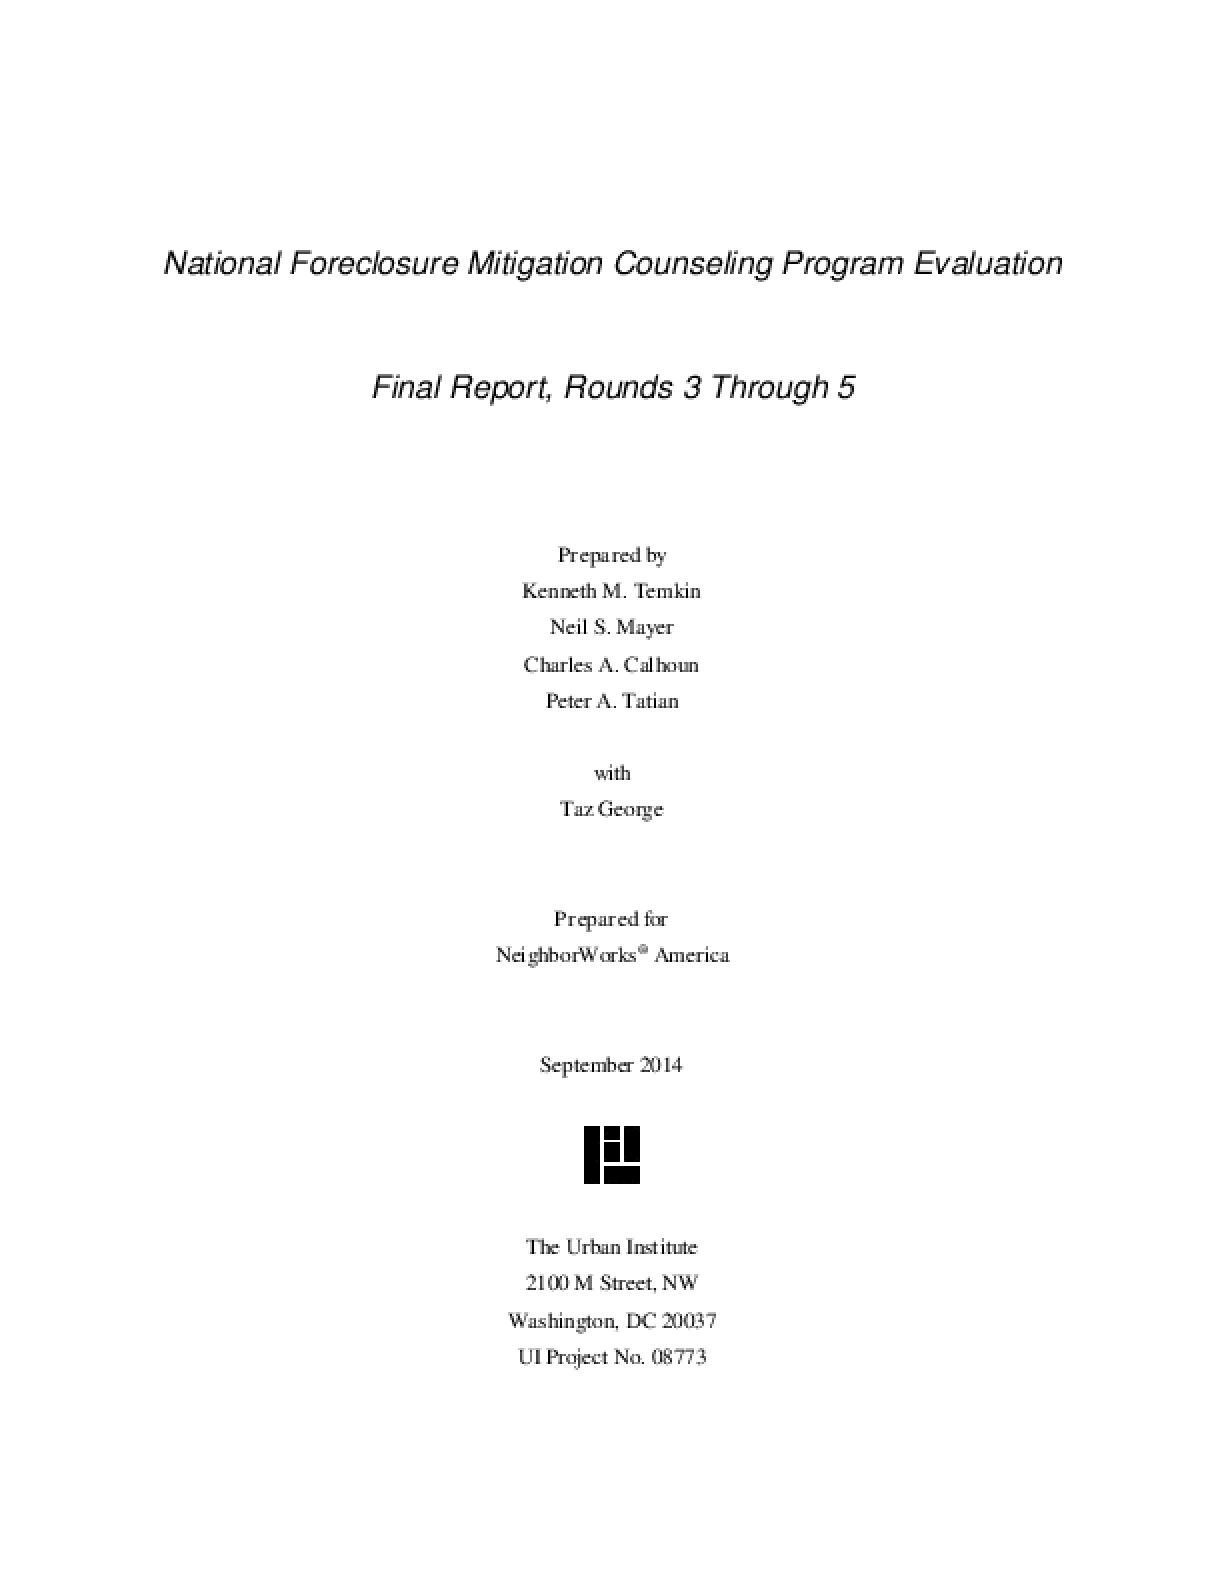 National Foreclosure Mitigation Counseling Program Evaluation: Final Report, Rounds 3 Through 5